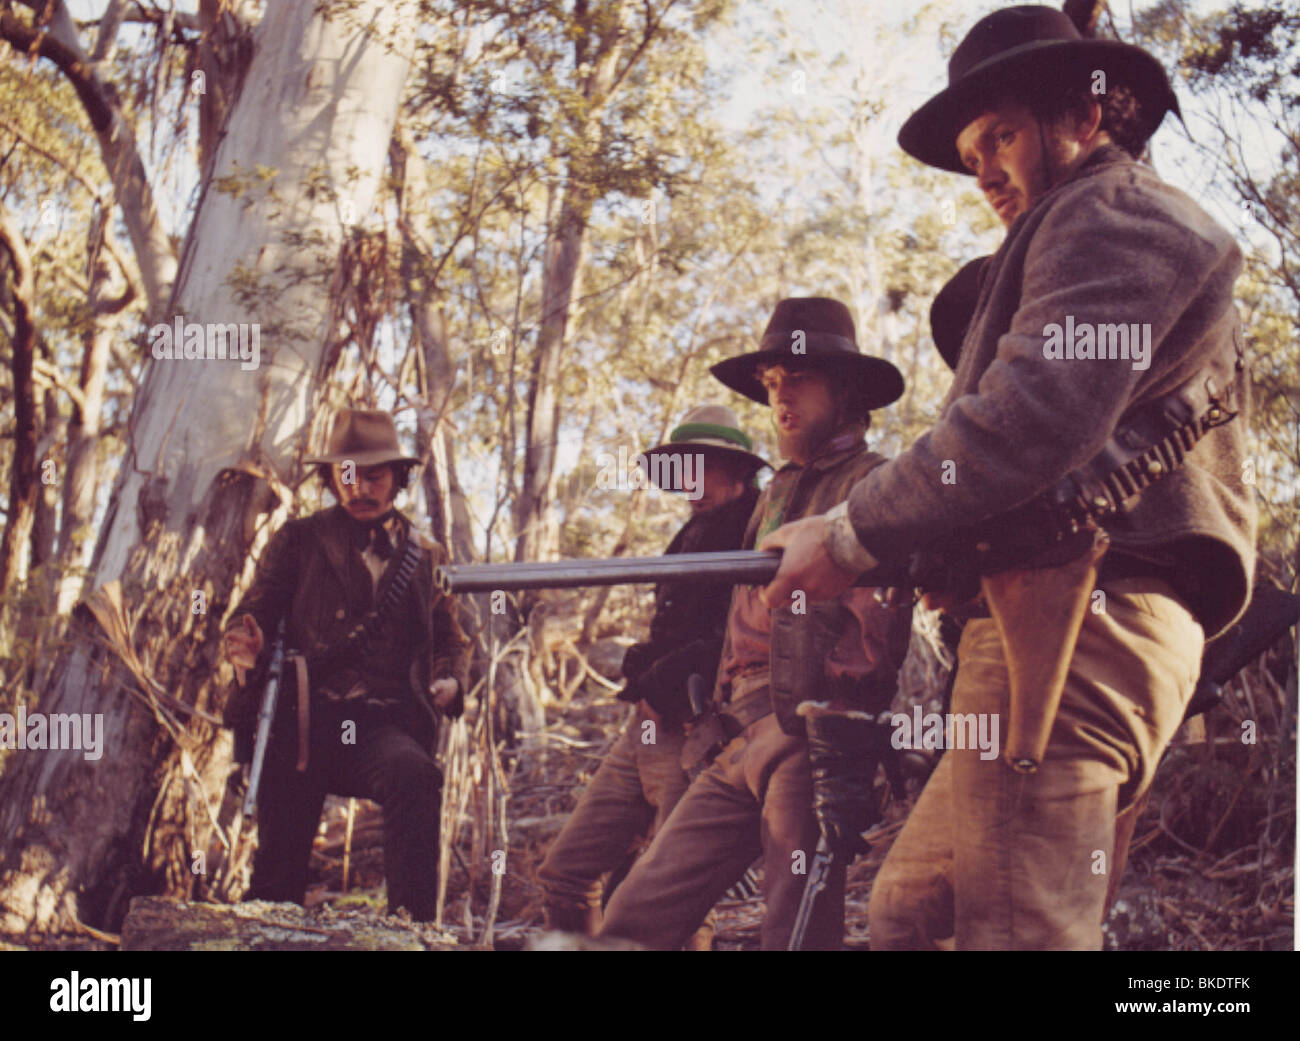 NED KELLY -1970 MICK JAGGER - Stock Image